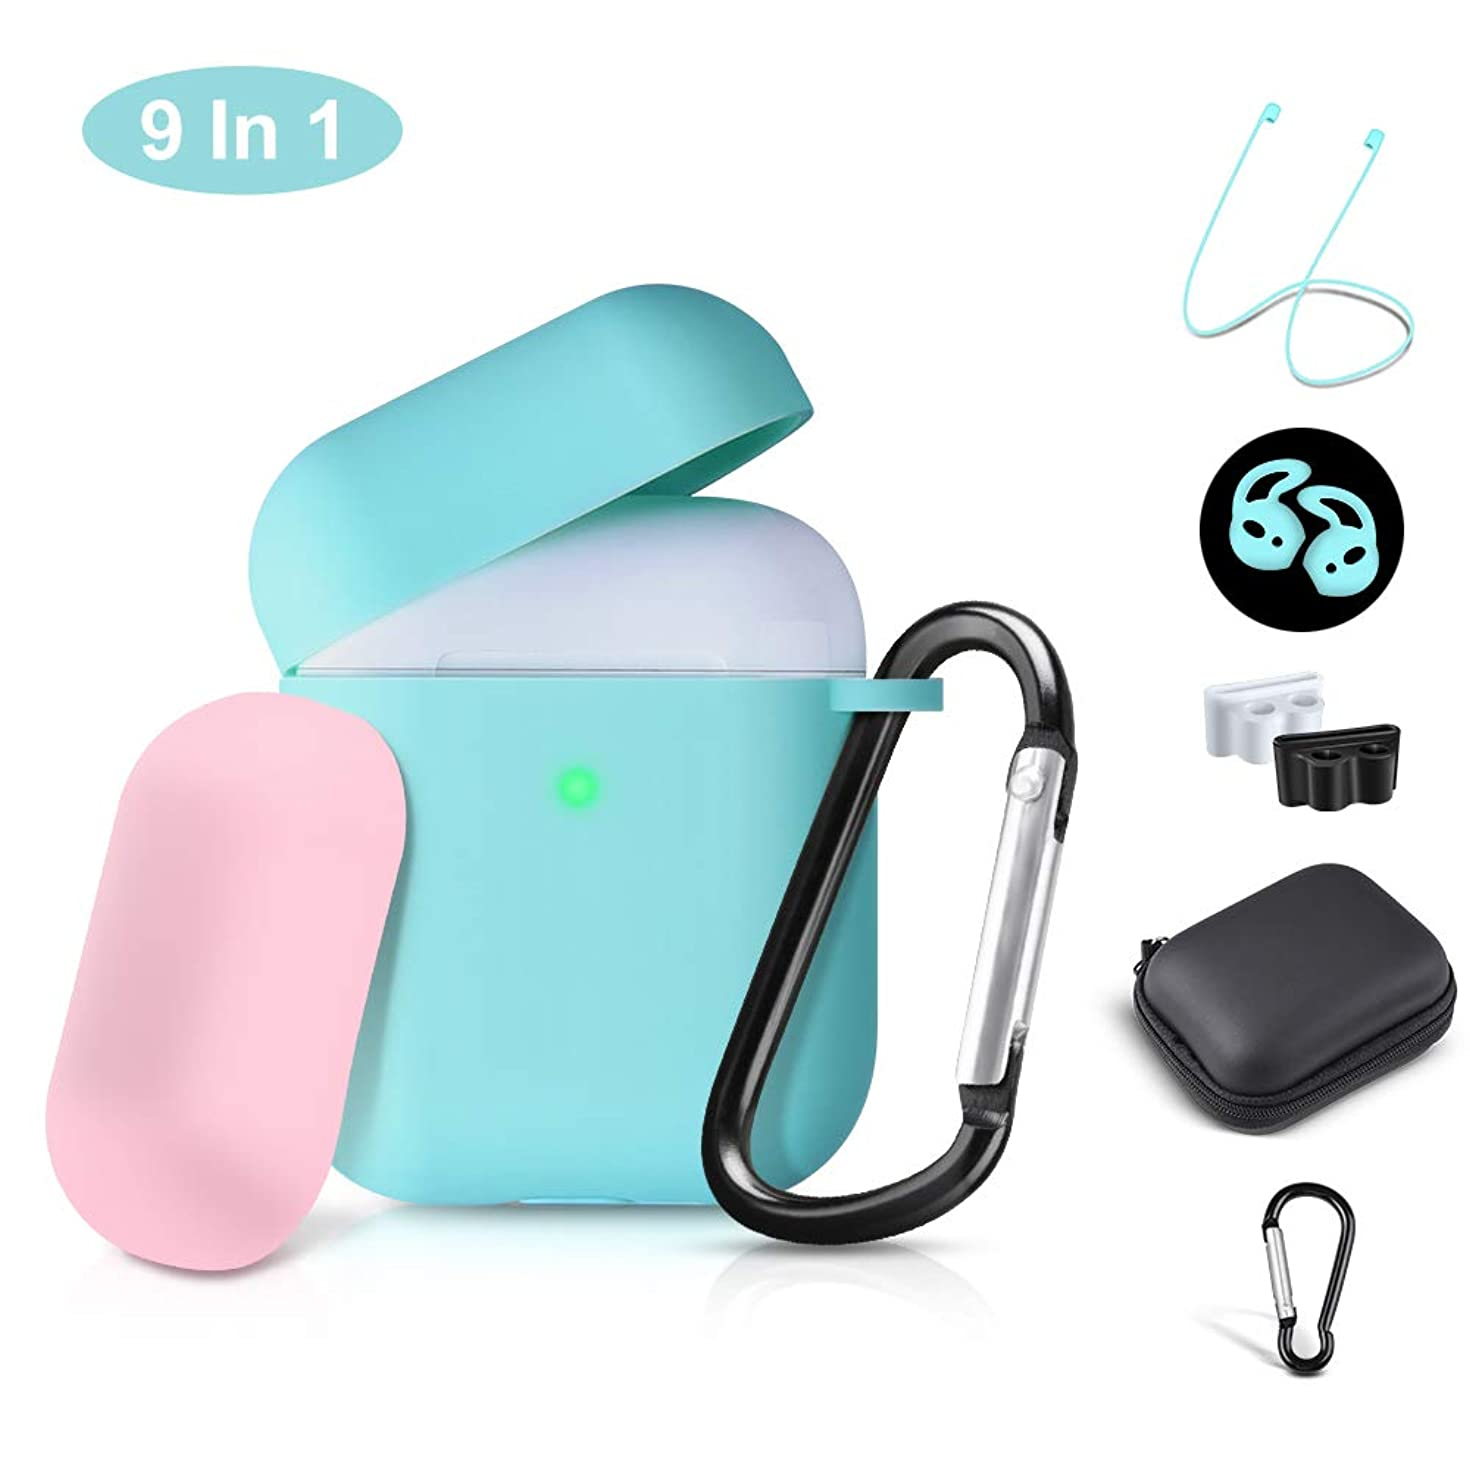 Airpods Case Cover, 2019 Airpod 2 Silicone Case Full Protective Cover Skin 9 in 1 Airpods Accessories for Apple Airpods 2 & 1 Wireless Charging Case, RTAKO Green Airpods Cover(Front LED Visible)